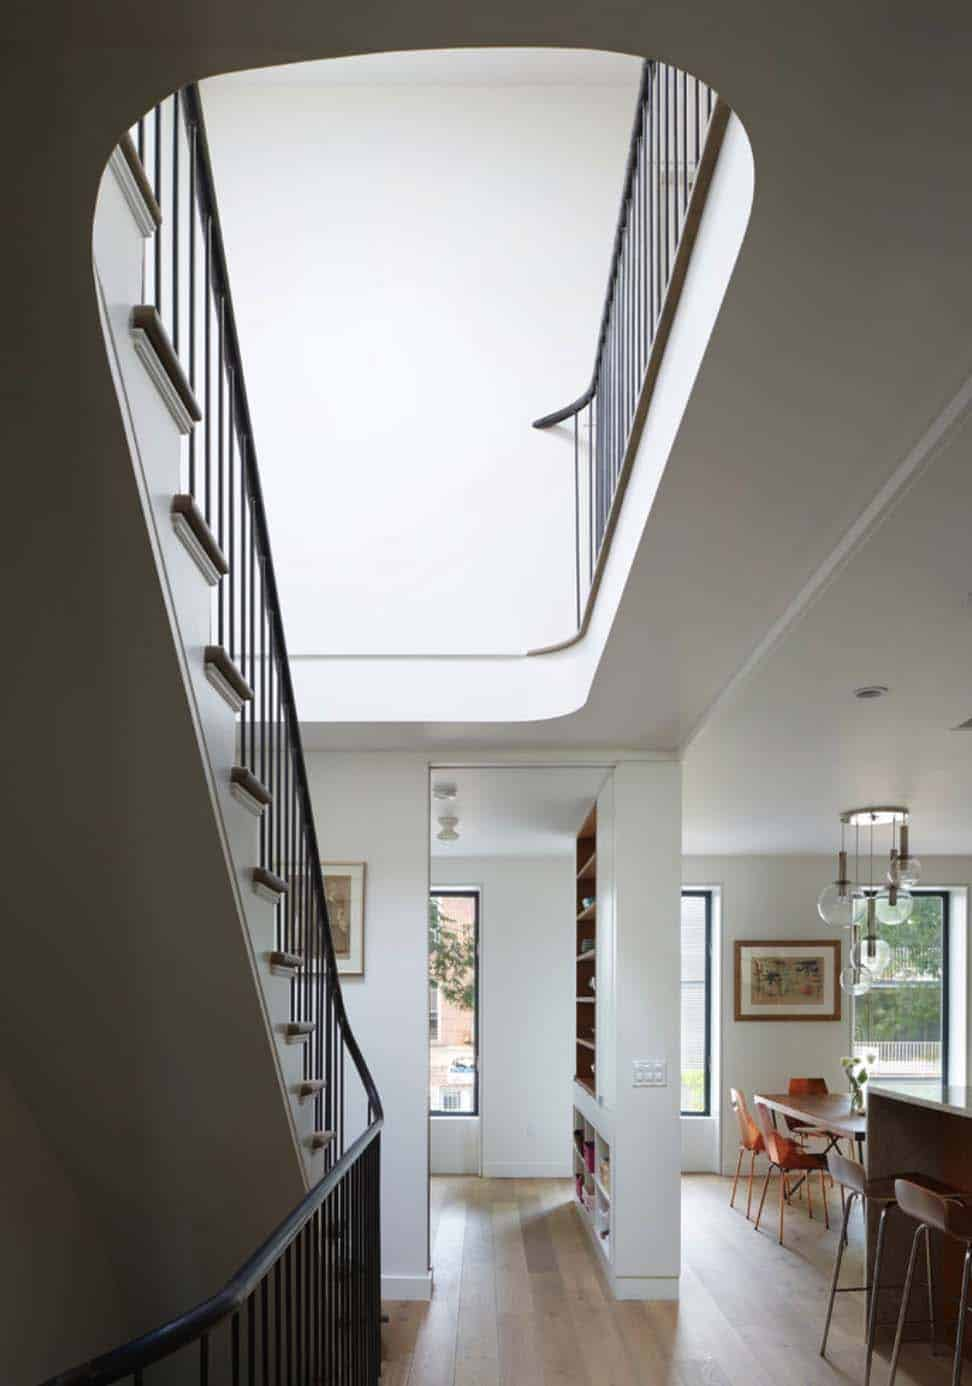 prospect-heights-townhouse-etelamaki-architecture-09-1-kindesign